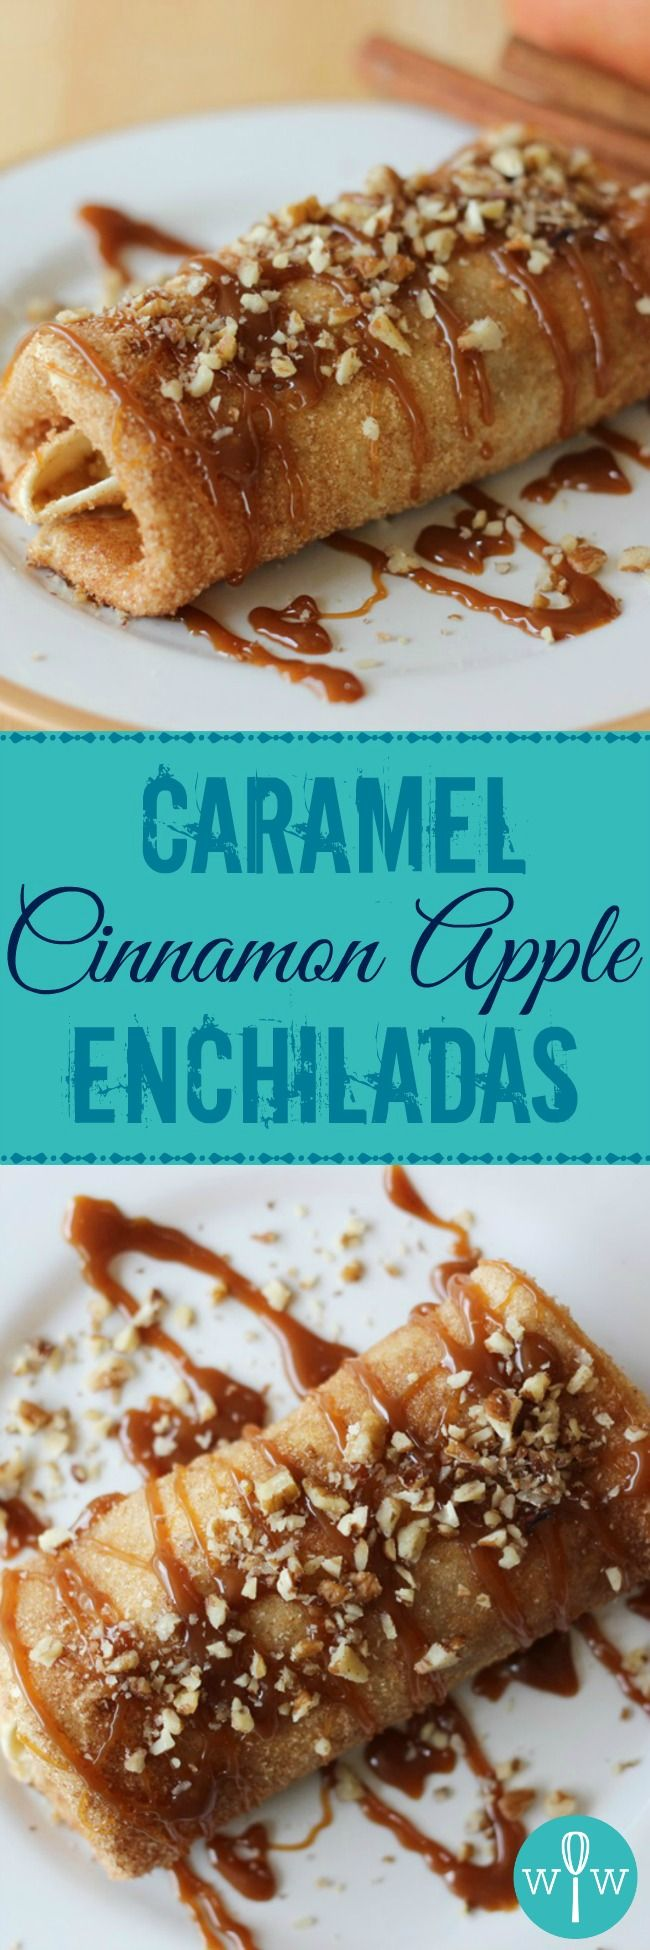 Caramel Cinnamon Apple Enchiladas - This crazy yummy recipe is an easy apple dessert that is simply divine! It's like apple pie in a wrap! | www.worthwhisking.com